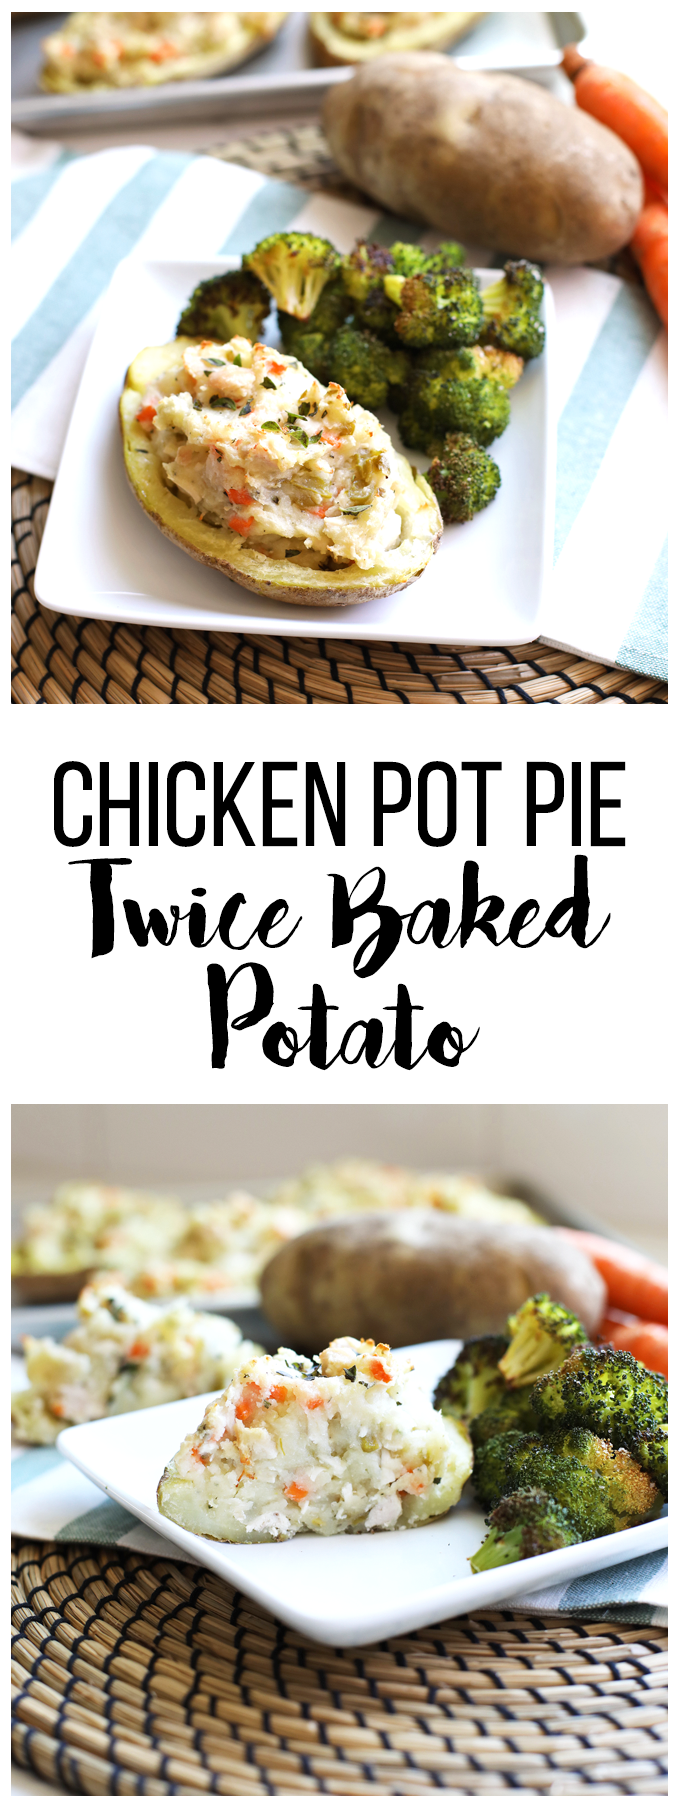 This Chicken Pot Pie Twice Baked Potatoes recipe is healthy comfort food at its finest! Whole30 compliant and perfect for fall!